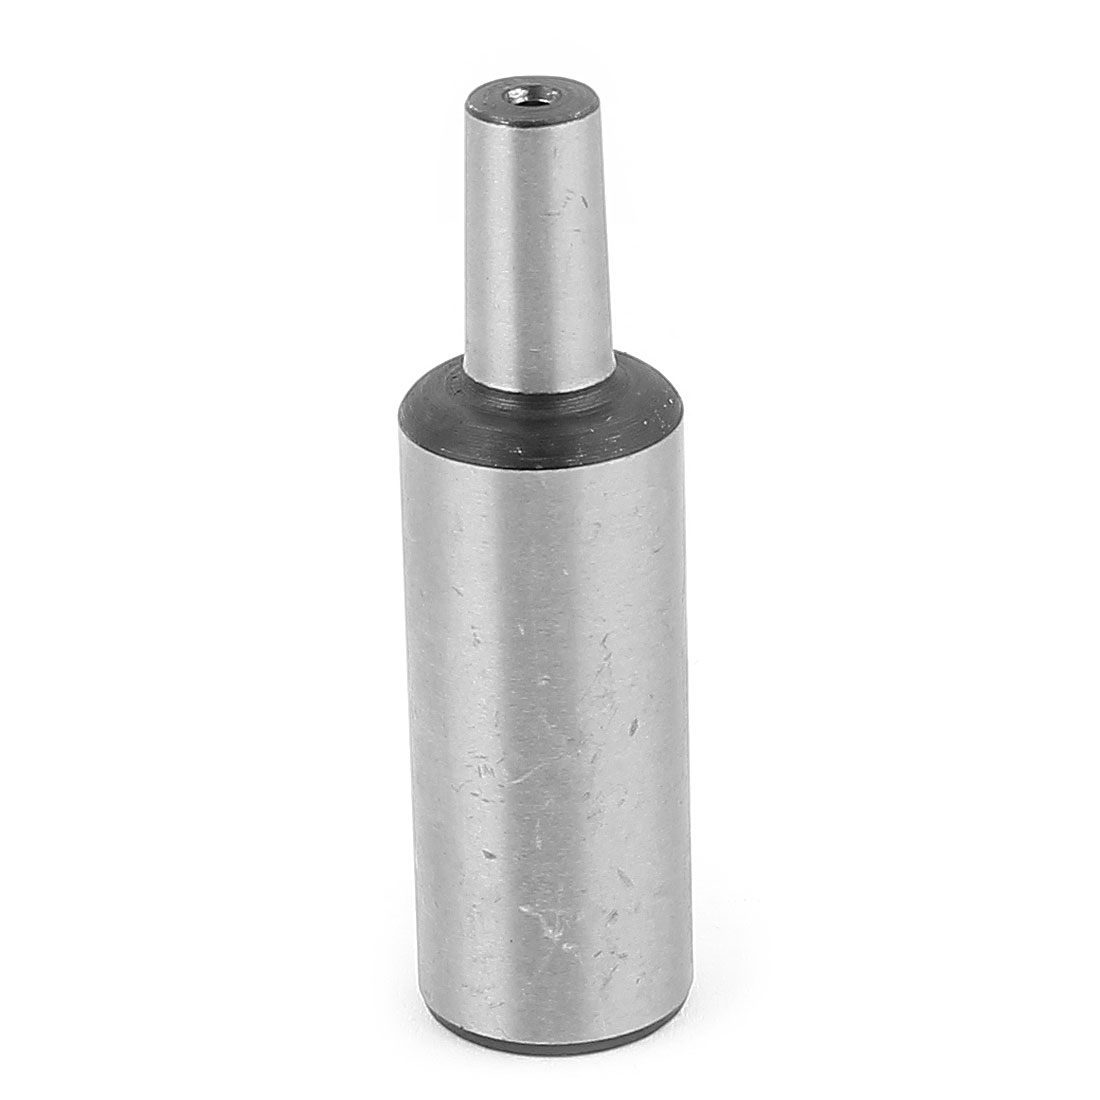 70mm Length 0-6mm Morse Taper Adapter Straight Shank Drill Chuck Arbor for Tailstock